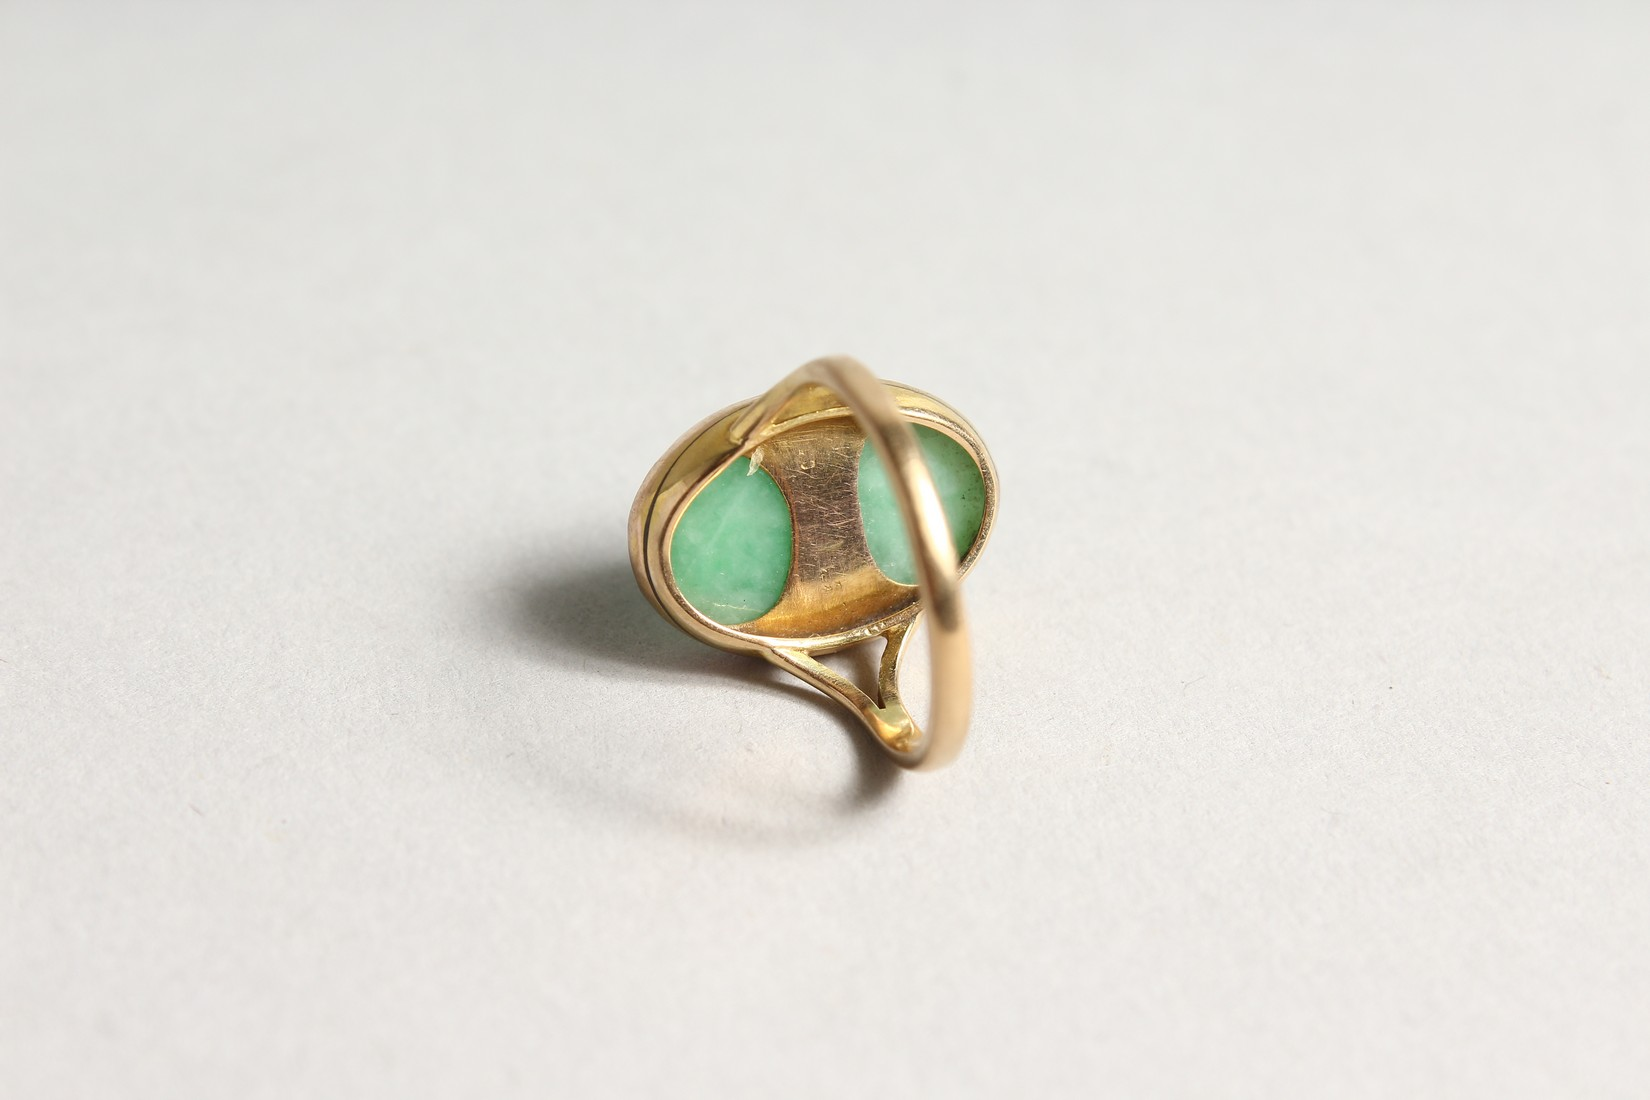 A GOLD AND JADE RING - Image 2 of 2